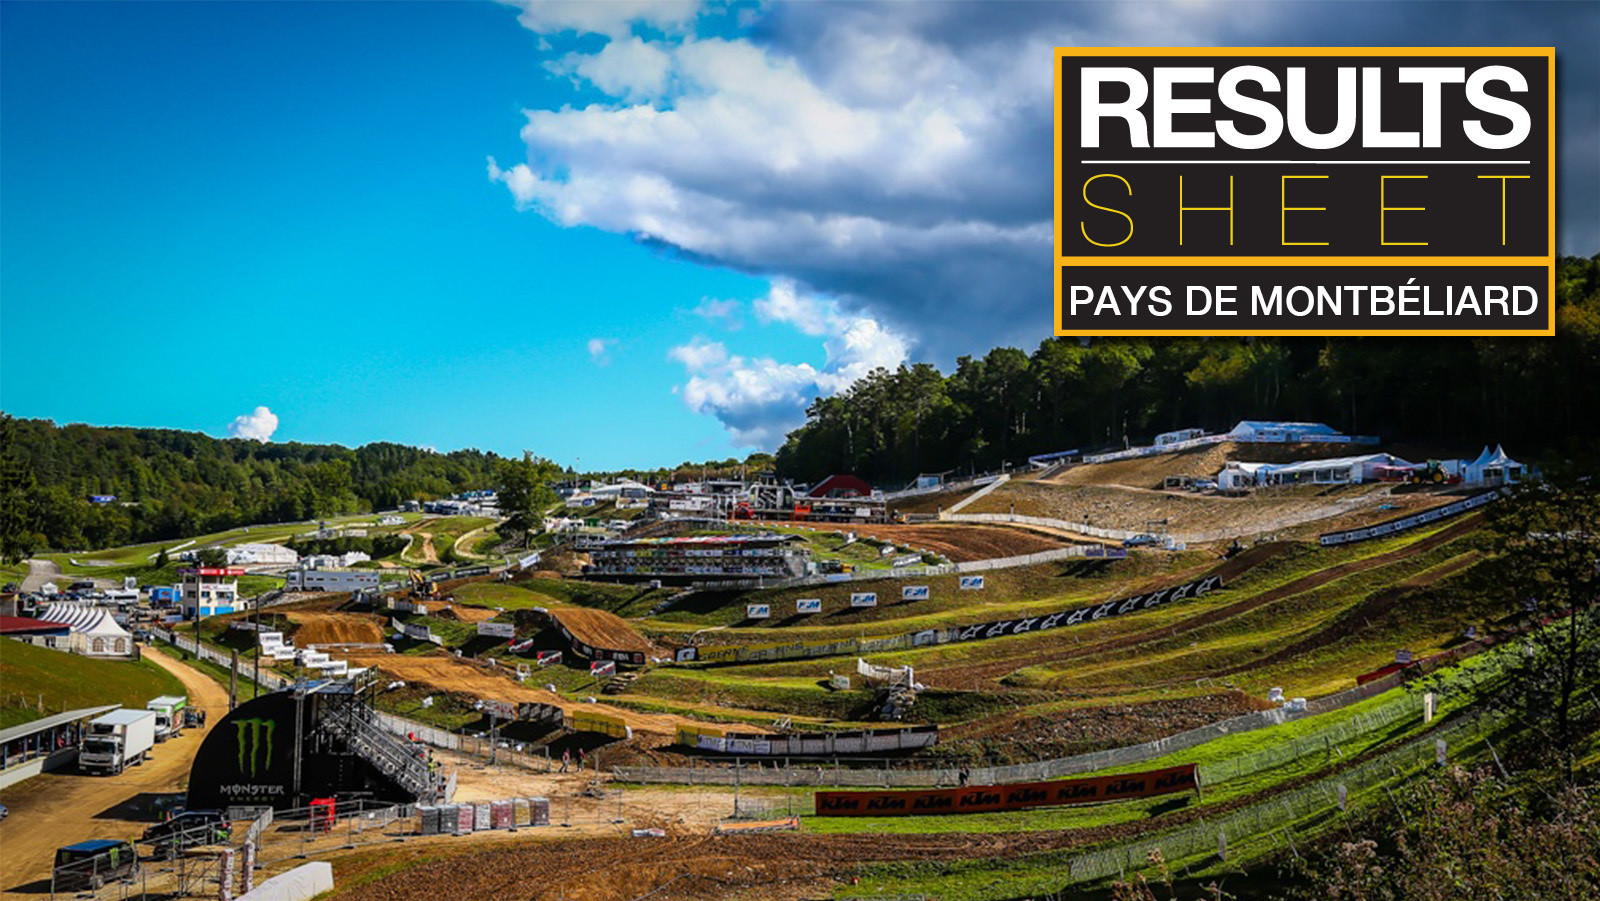 Results Sheet: 2017 MXGP of Pays de Montbéliard - Saturday